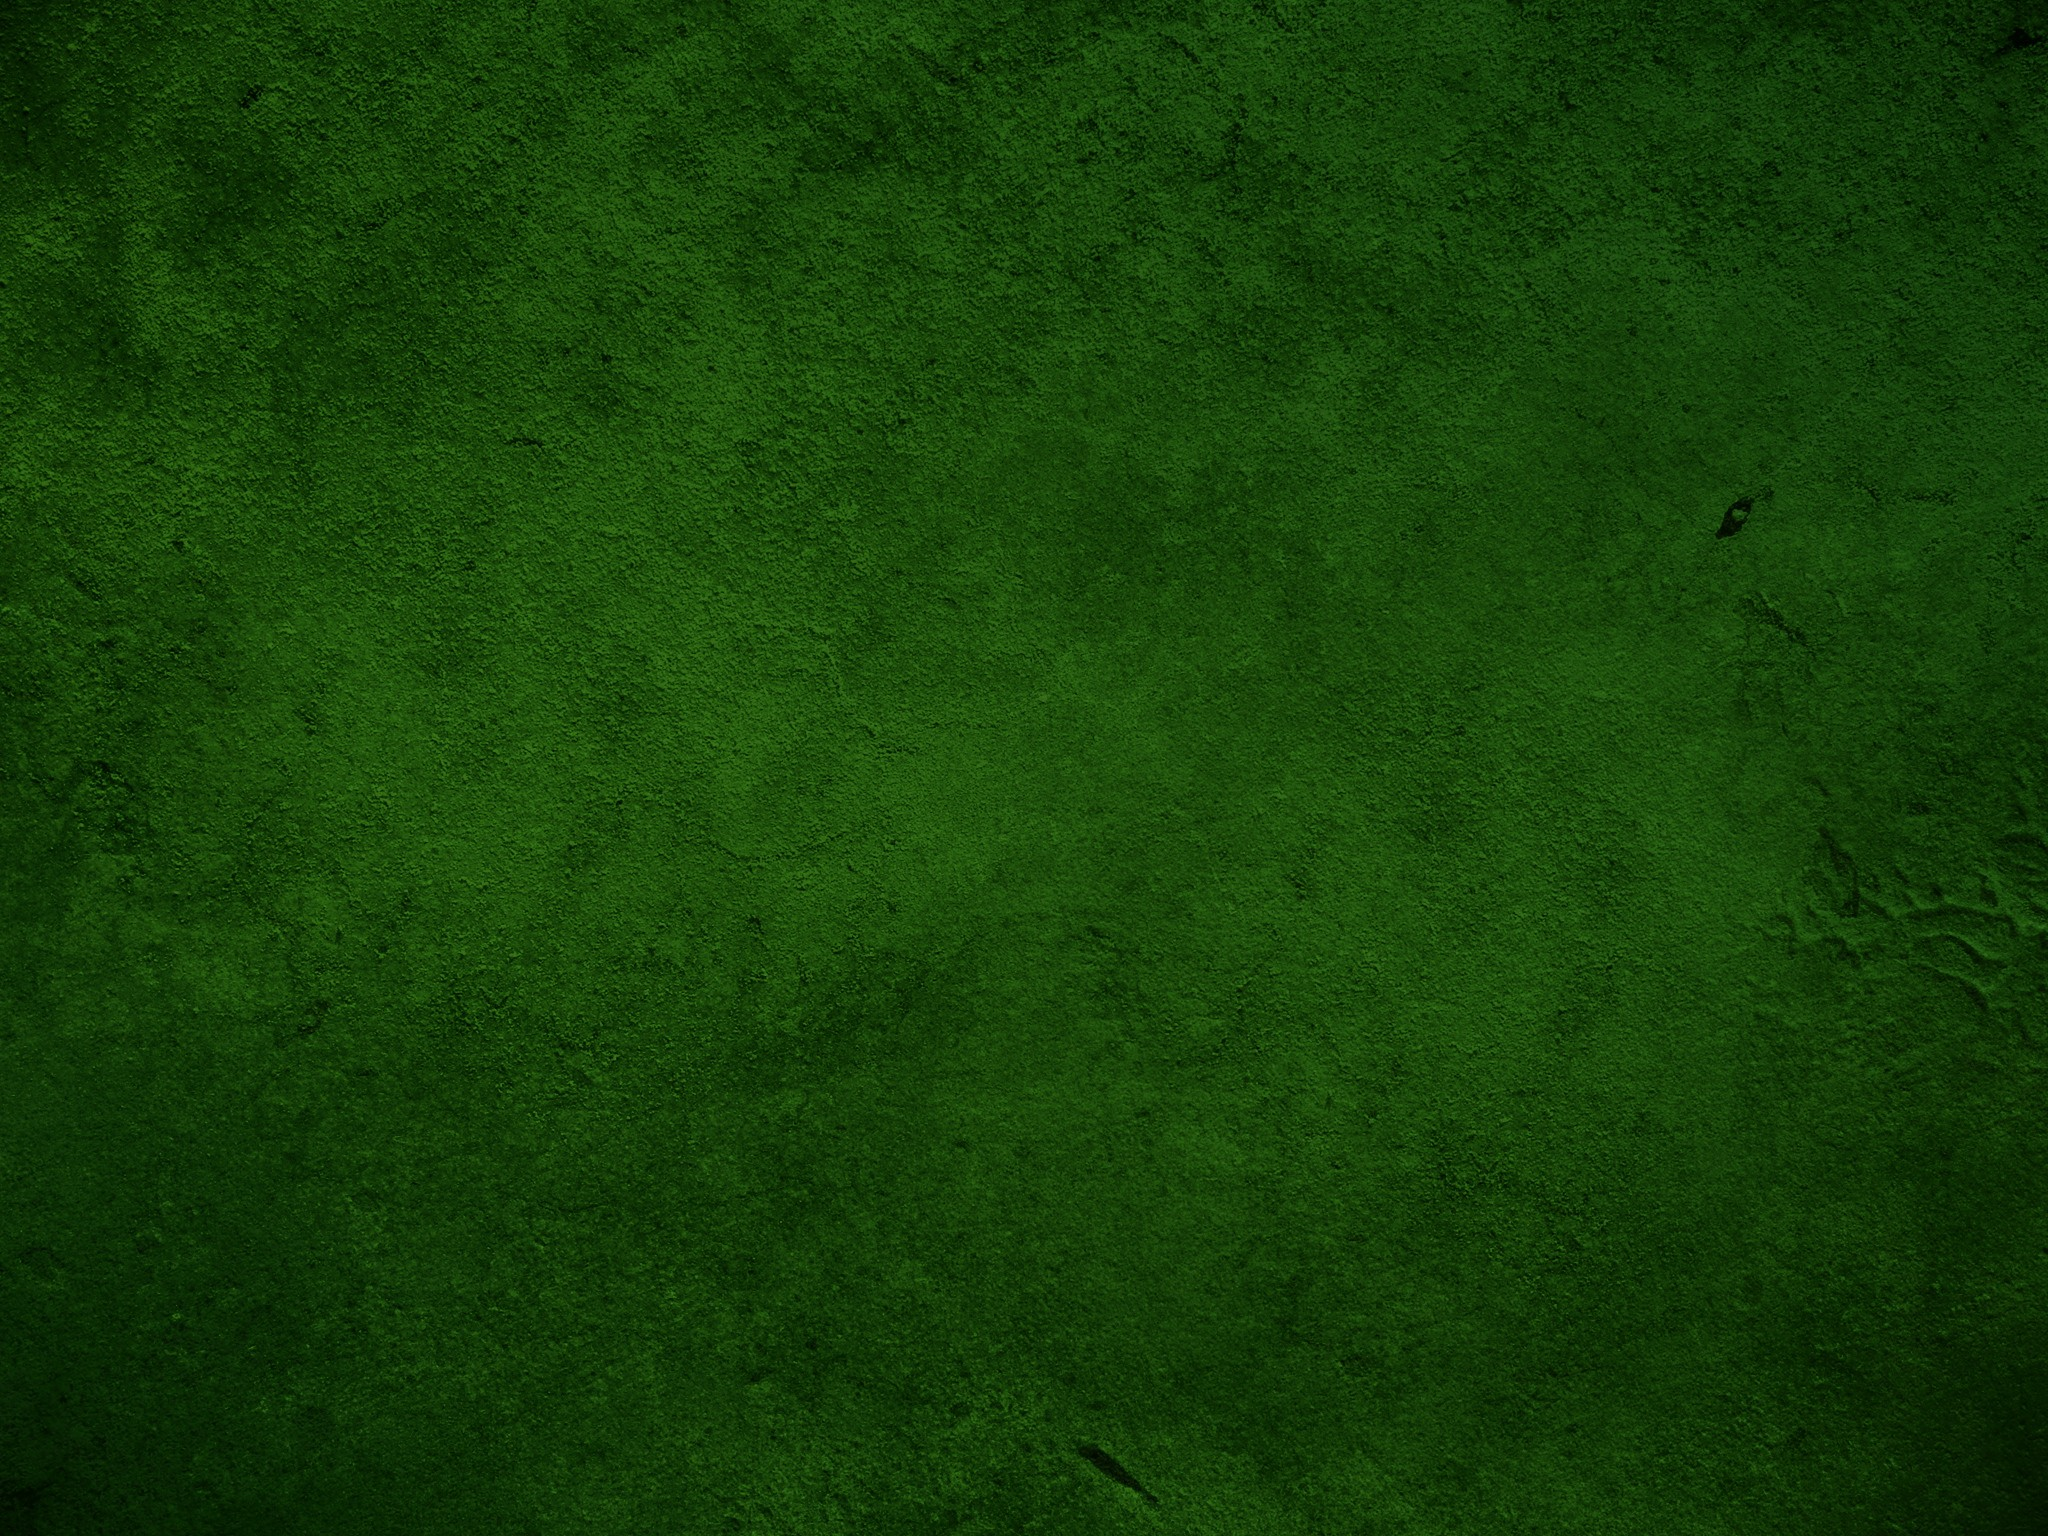 green background download free awesome full hd